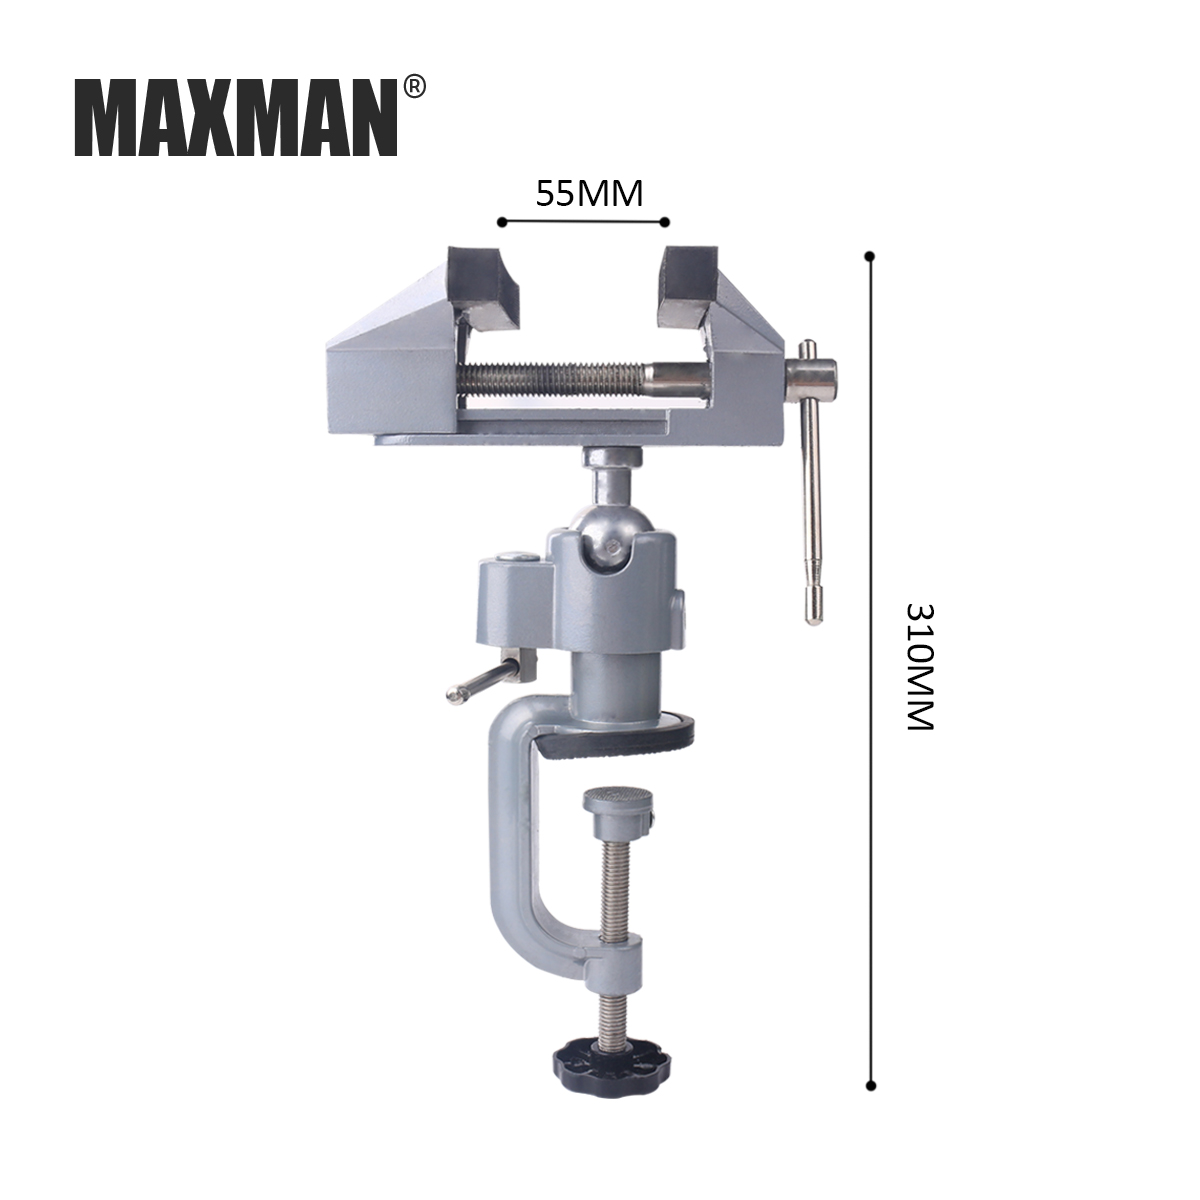 MAXMAN TOOLS Bench Vise Aluminum 75mm Table Screw Vise Bench Clamp Screw Vise for DIY Craft Mold Fixed Repair Tool